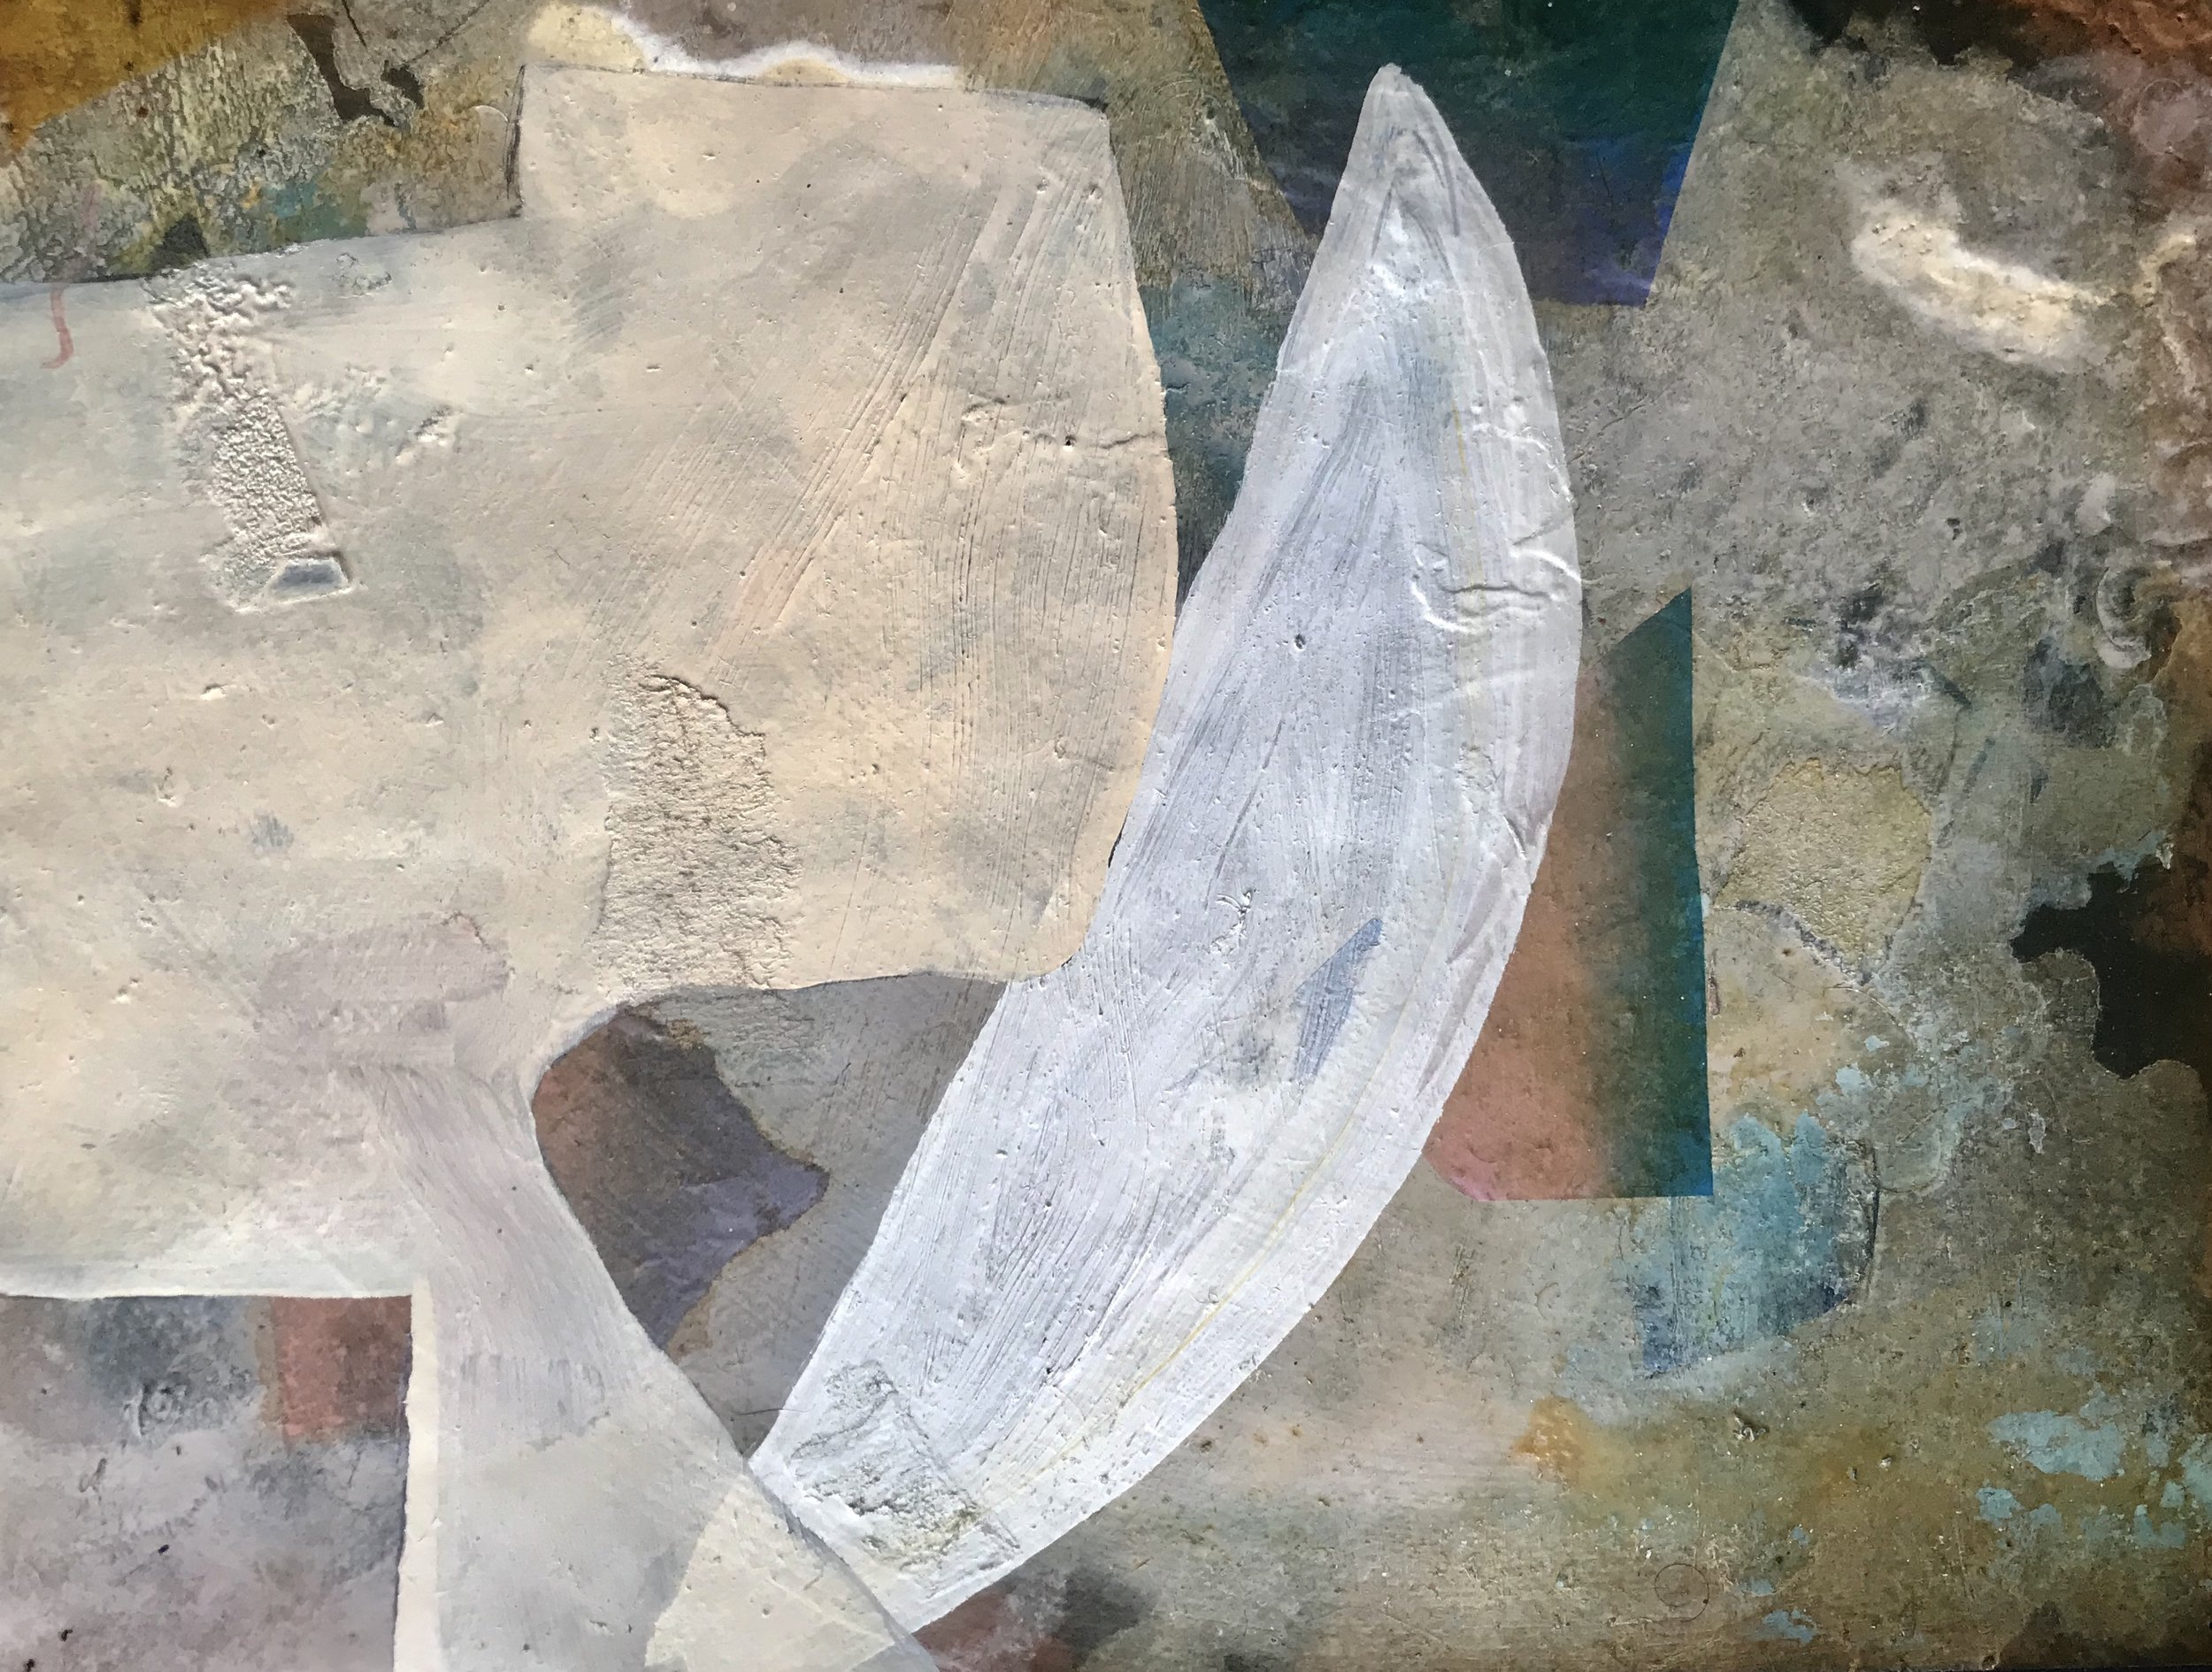 Bryan Osburn   Untitled , 2013 Oil and collage on paper 9 x 12 inches (22.9 x 30.5 cm)